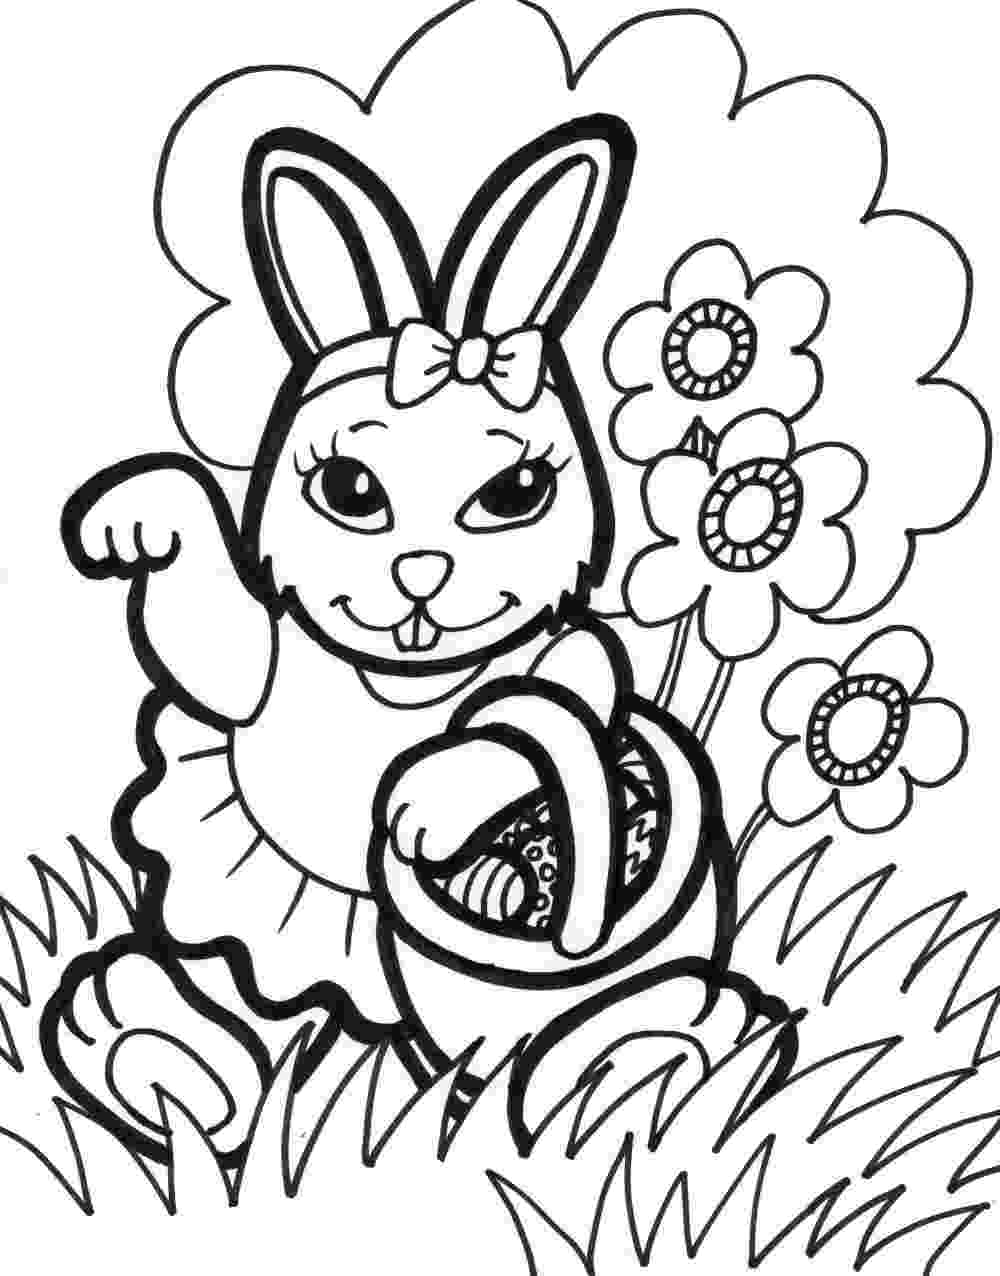 easter bunny coloring pages easter colouring easter bunny colouring in pages bunny easter coloring pages